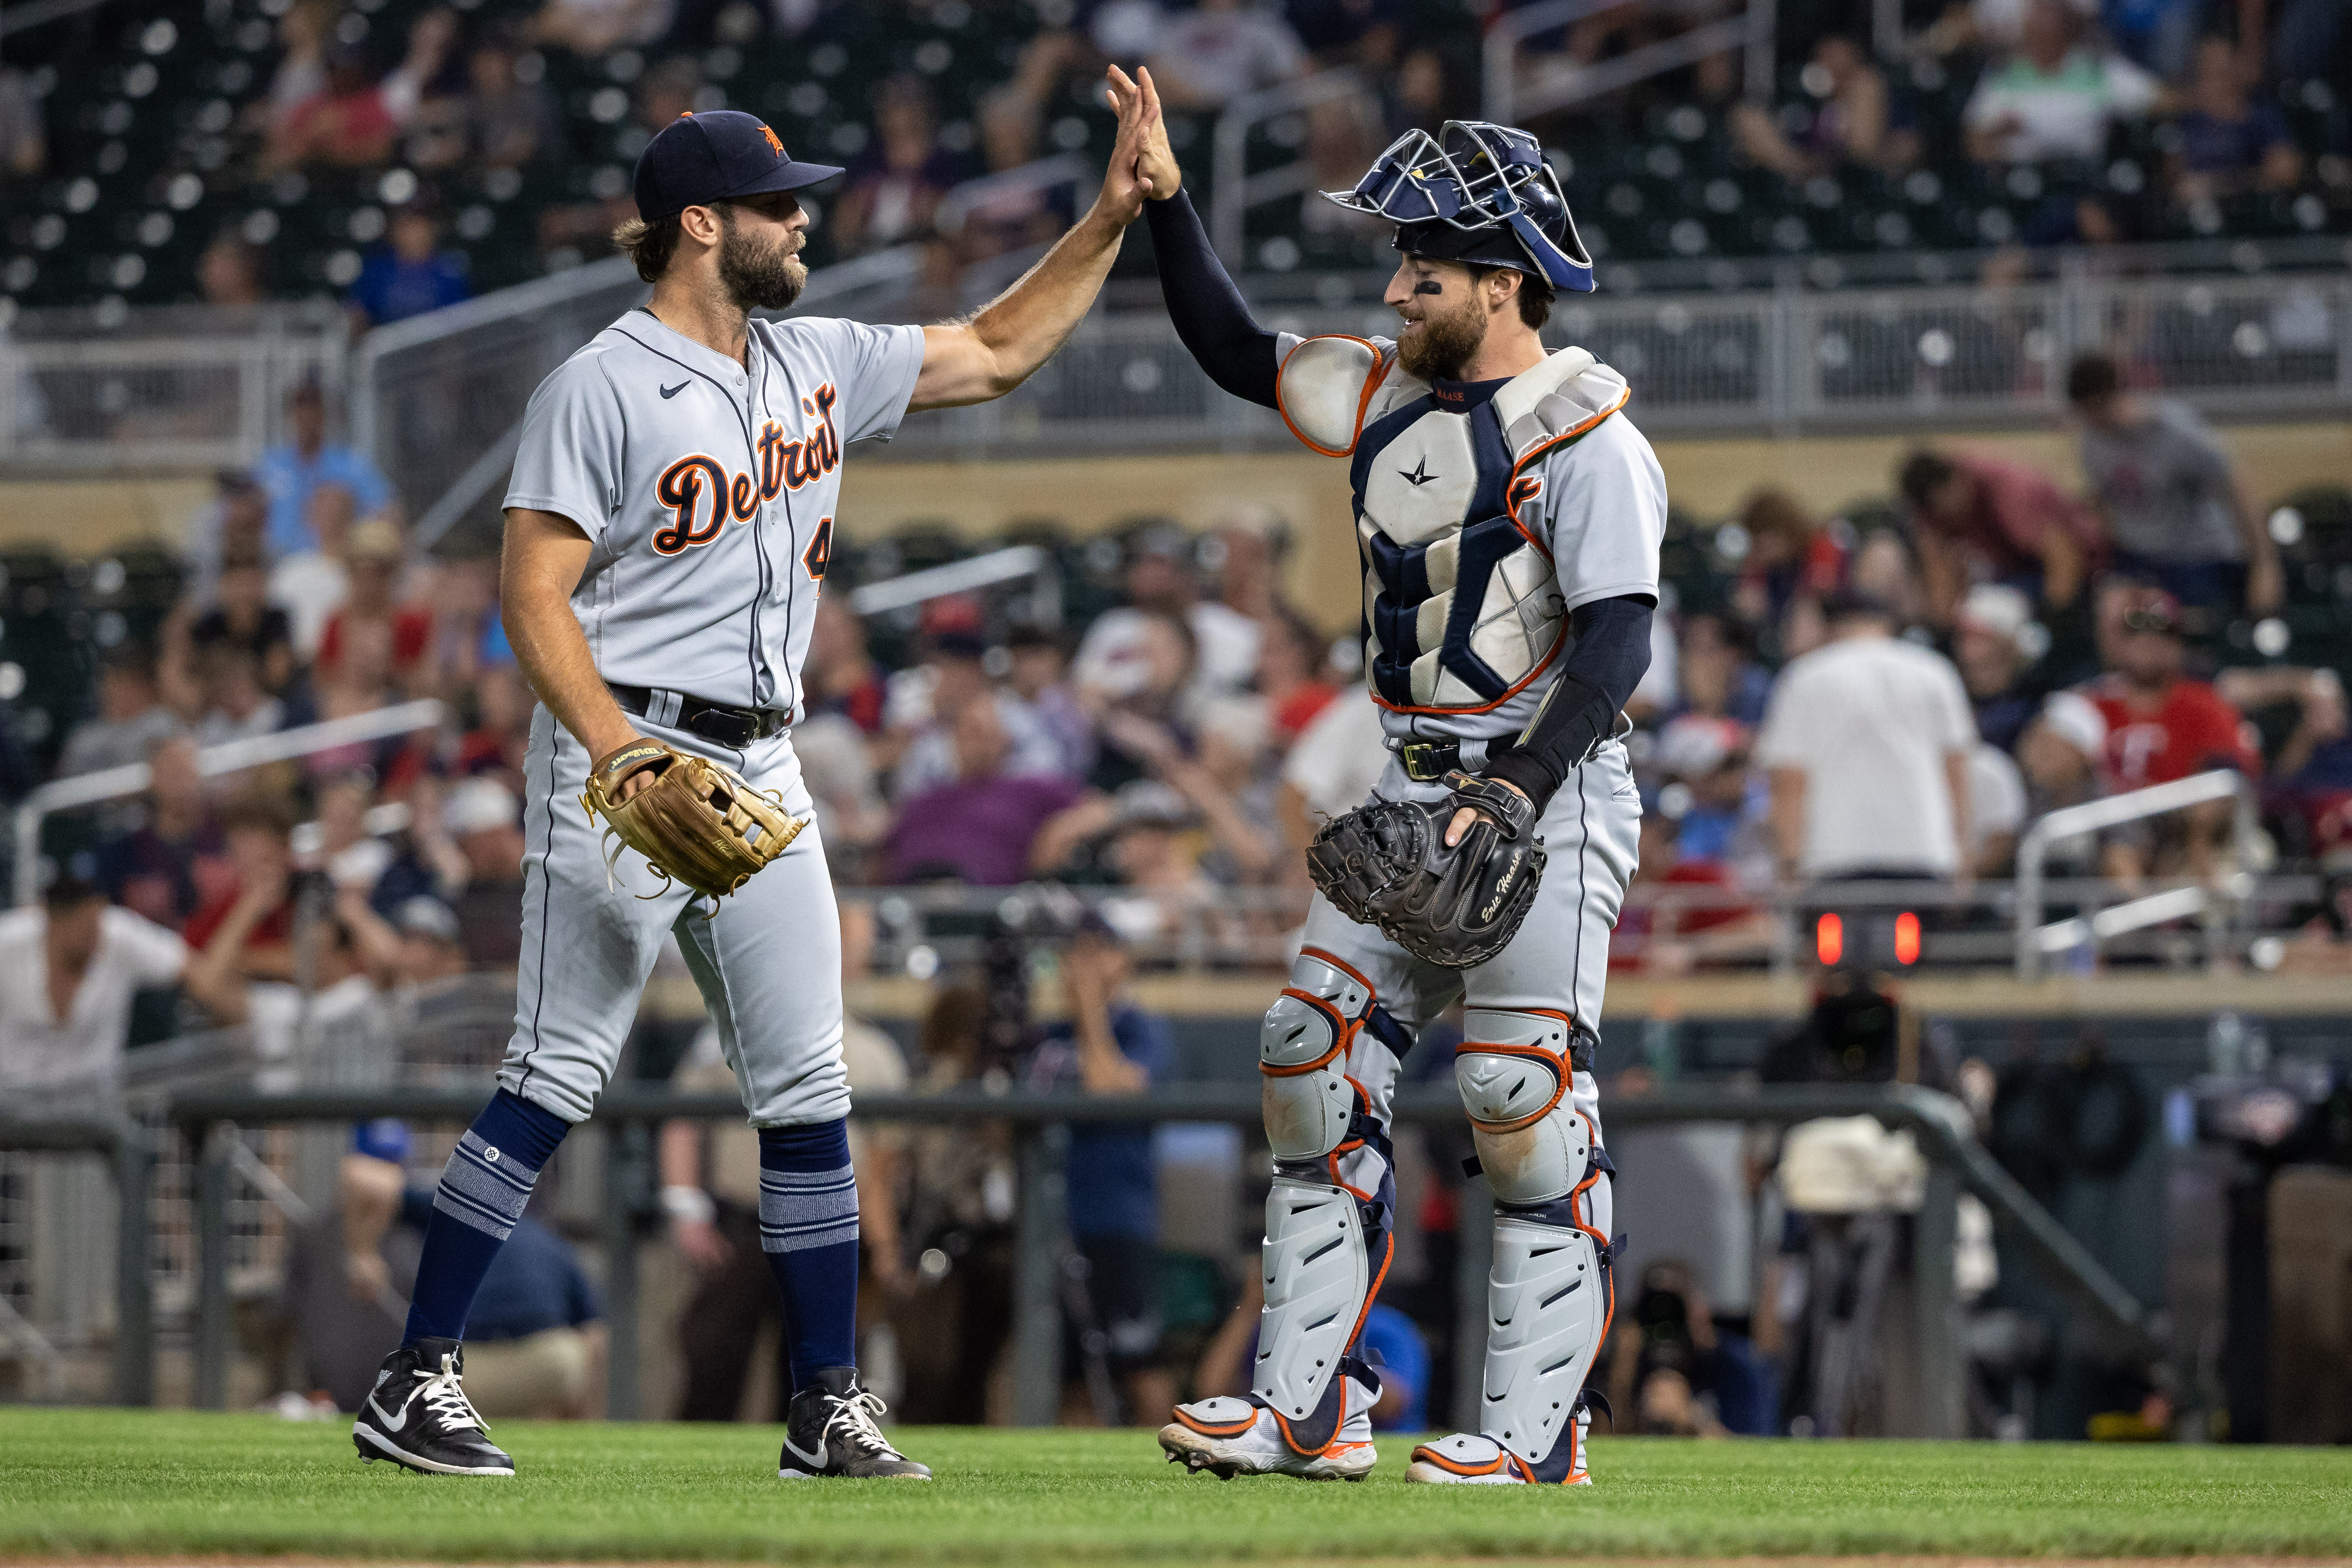 Jul 27, 2021; Minneapolis, Minnesota, USA; Detroit Tigers relief pitcher Daniel Norris (44) and catcher Eric Haase (13) celebrate after defeating the Minnesota Twins at Target Field. Jordan Johnson-USA TODAY Sports